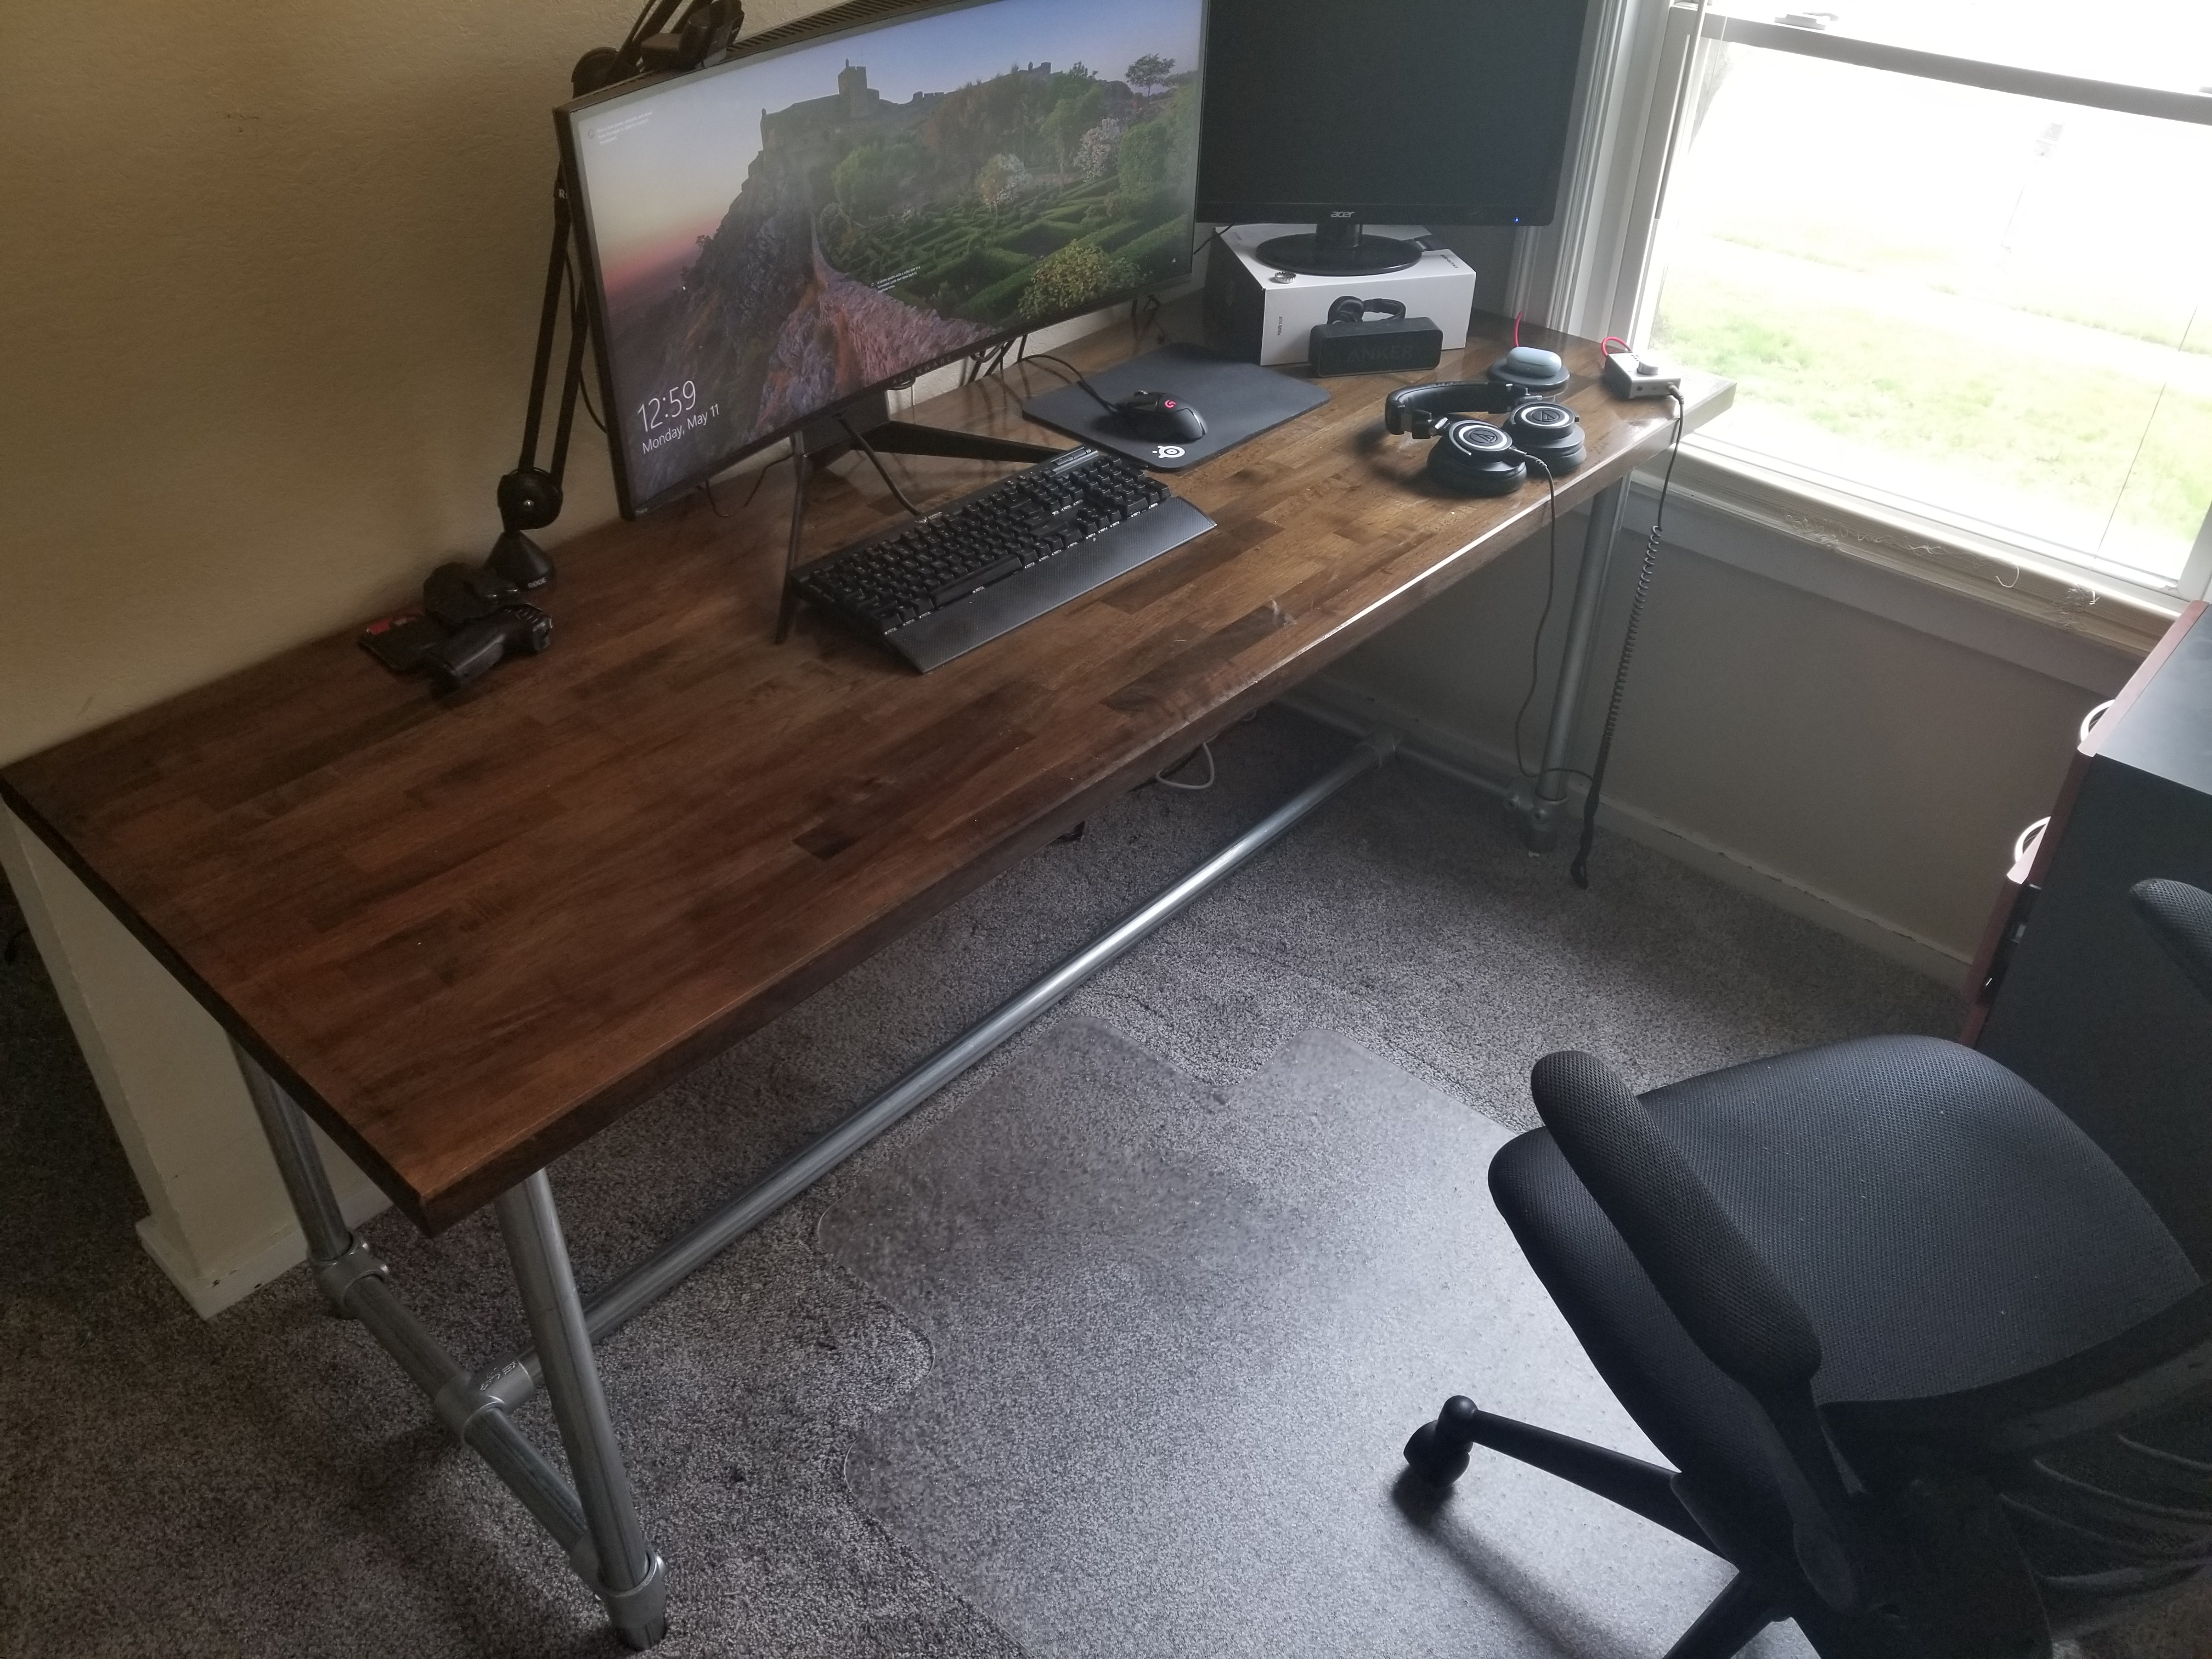 Elegant Desk Made With Fittings